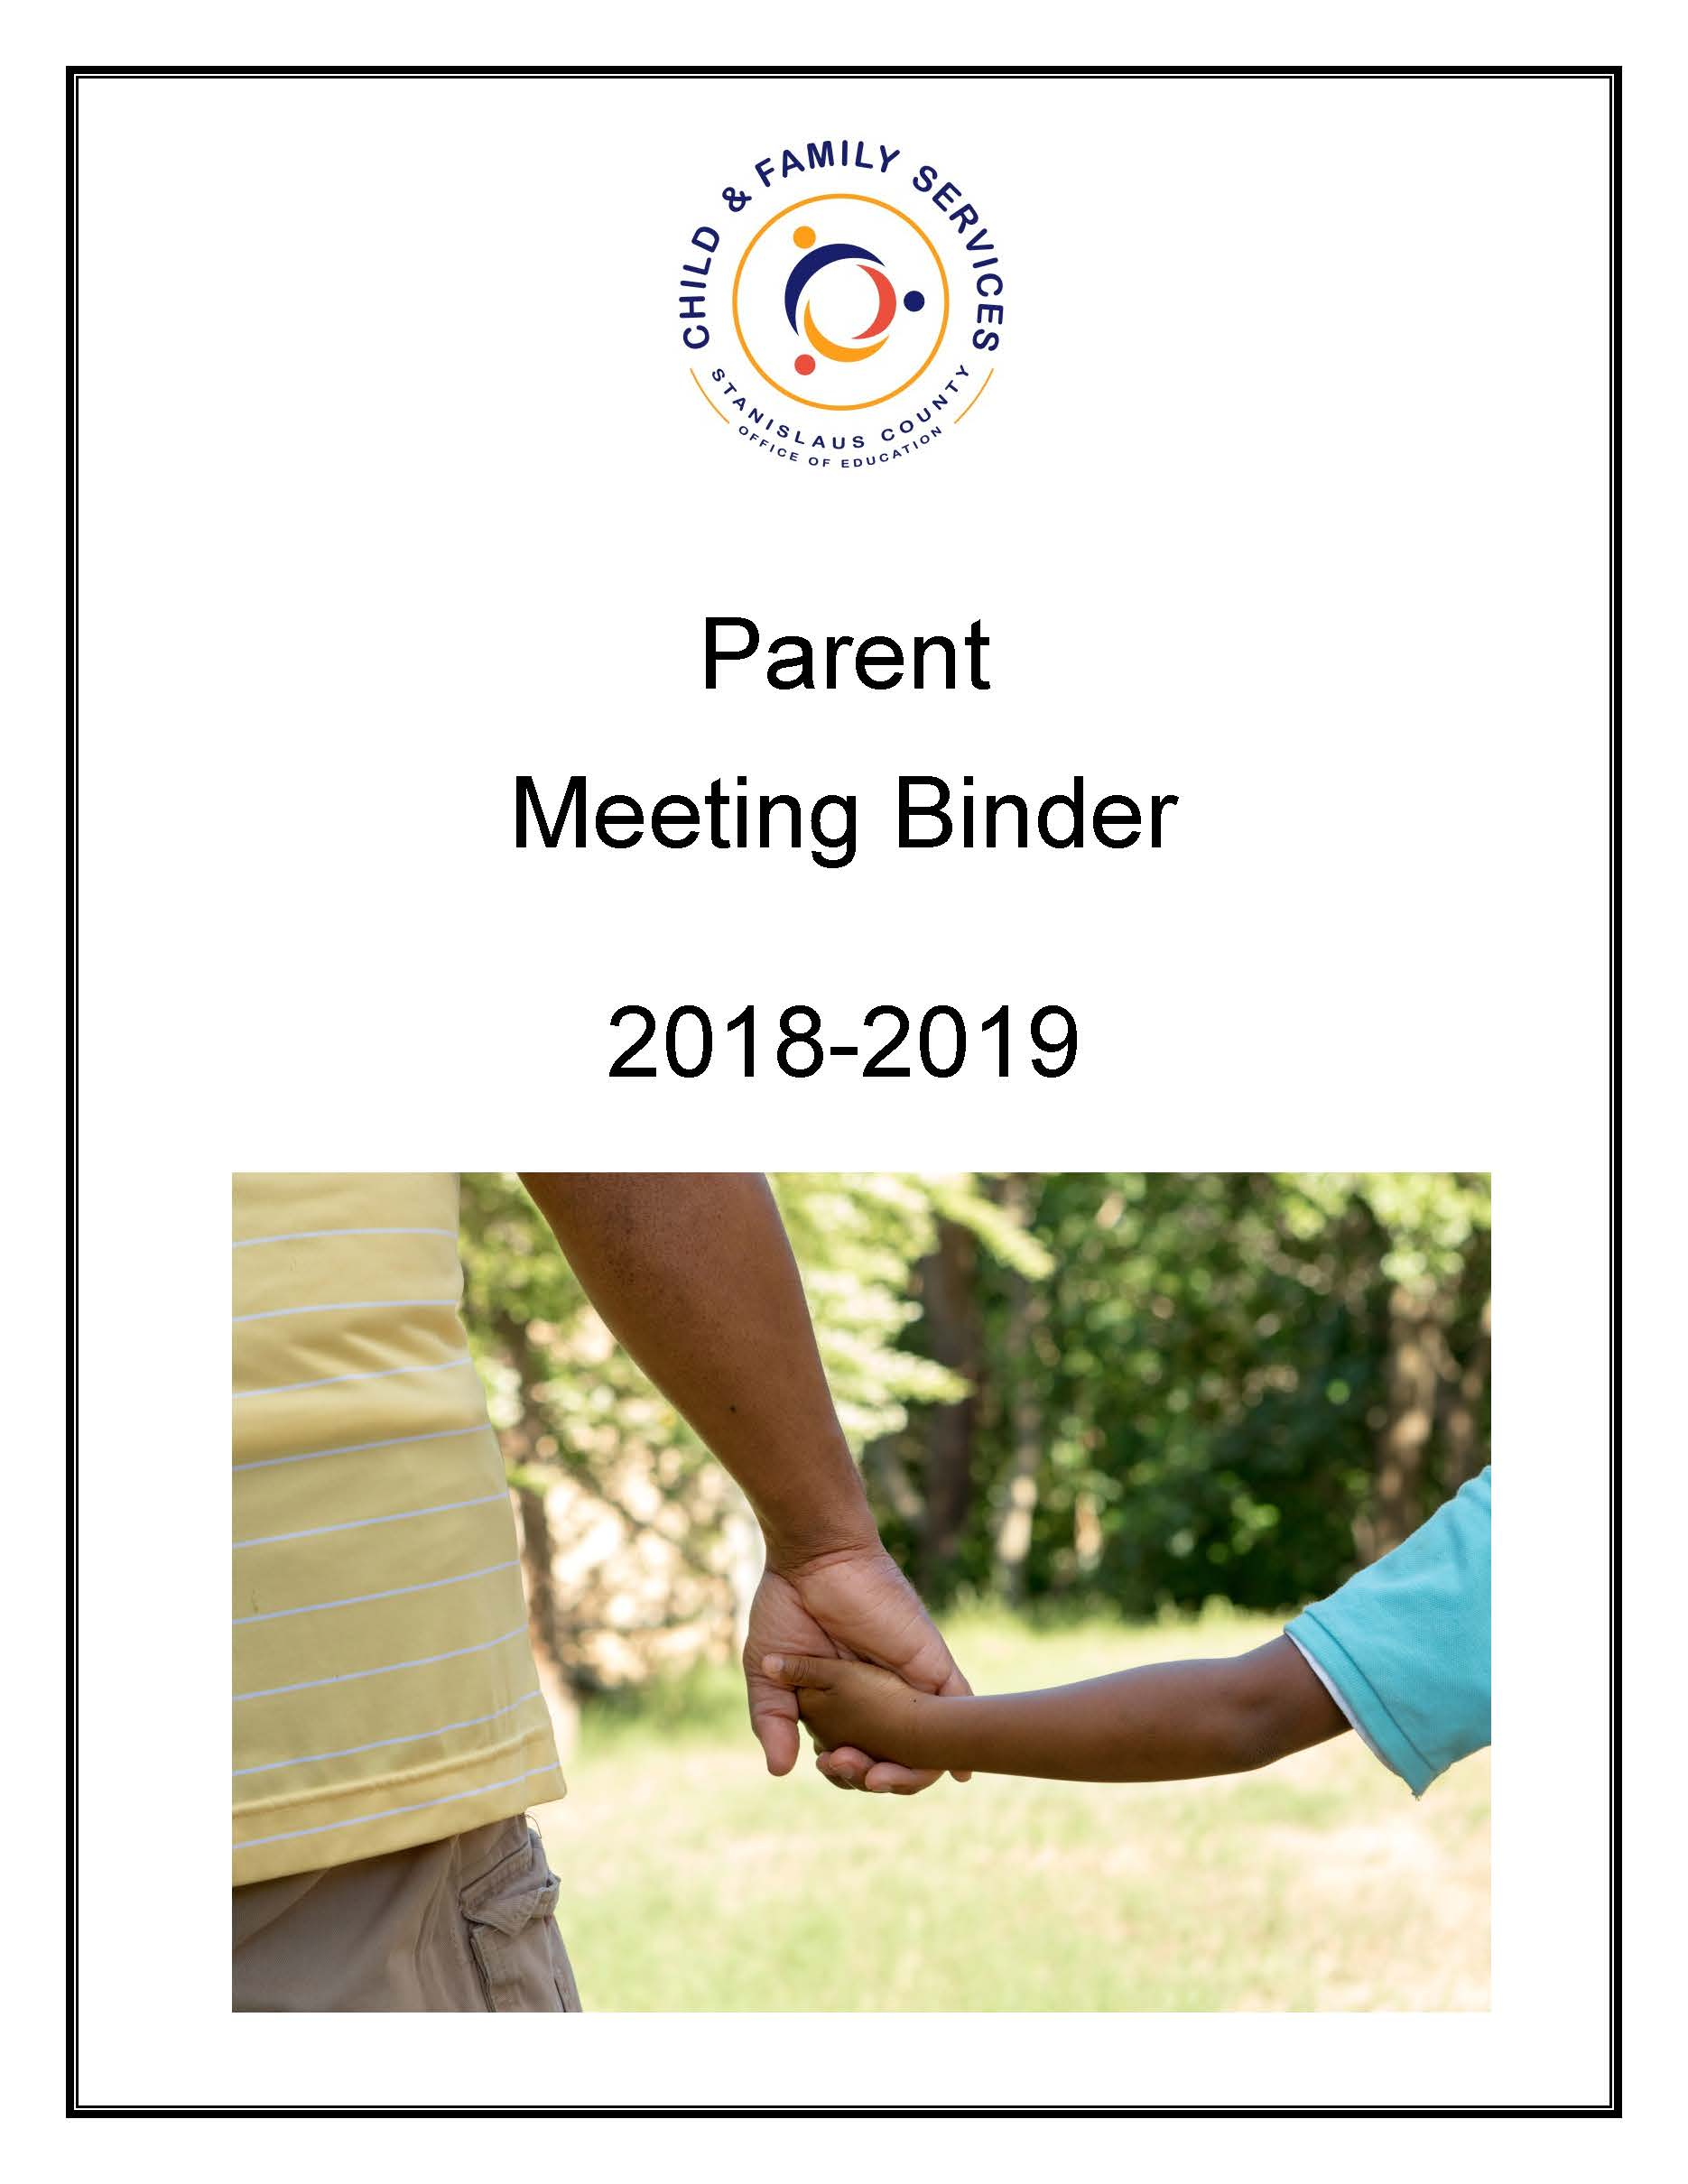 Monthly+Parent+Meeting,+Community+Outreach+&+Resource+Binder_Page_1.jpg